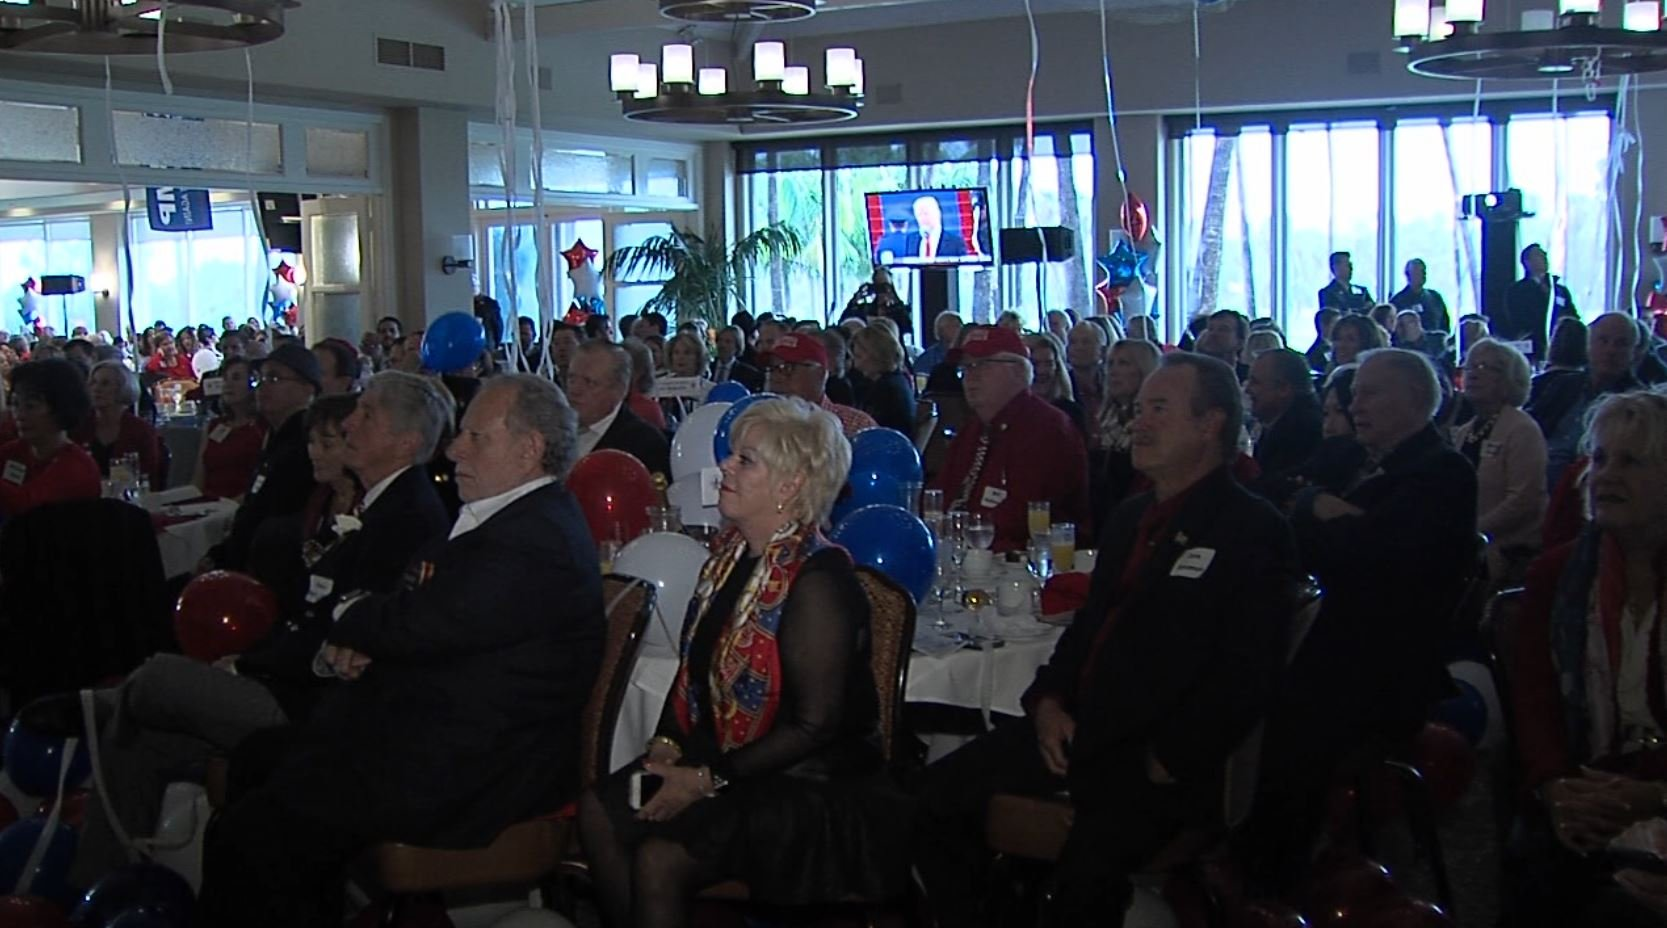 Local Republicans watch Inauguration at live viewing party